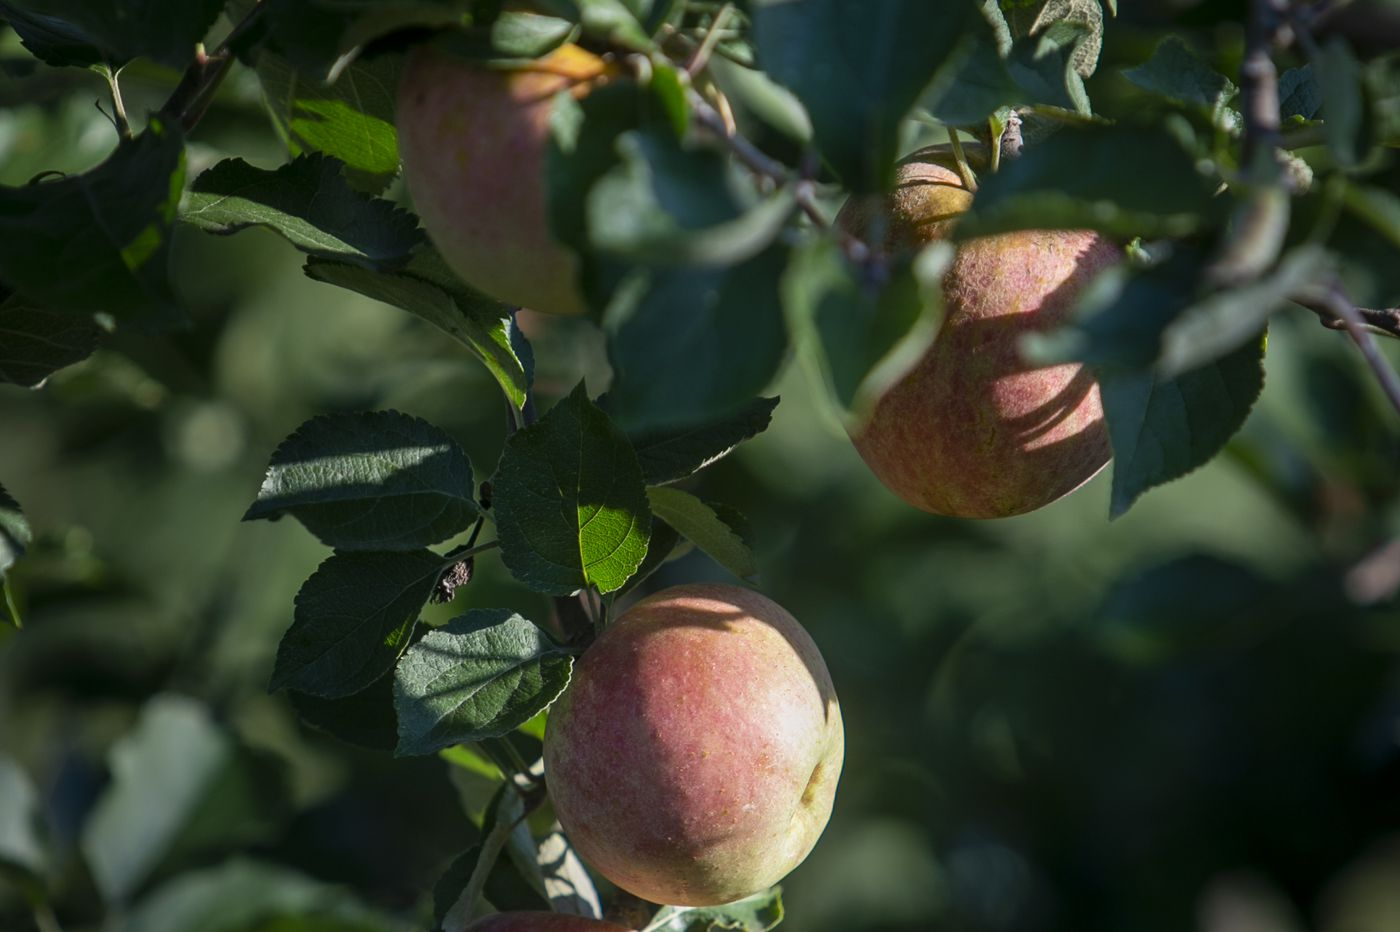 Want to pick apples? Better do it now | Let's Eat